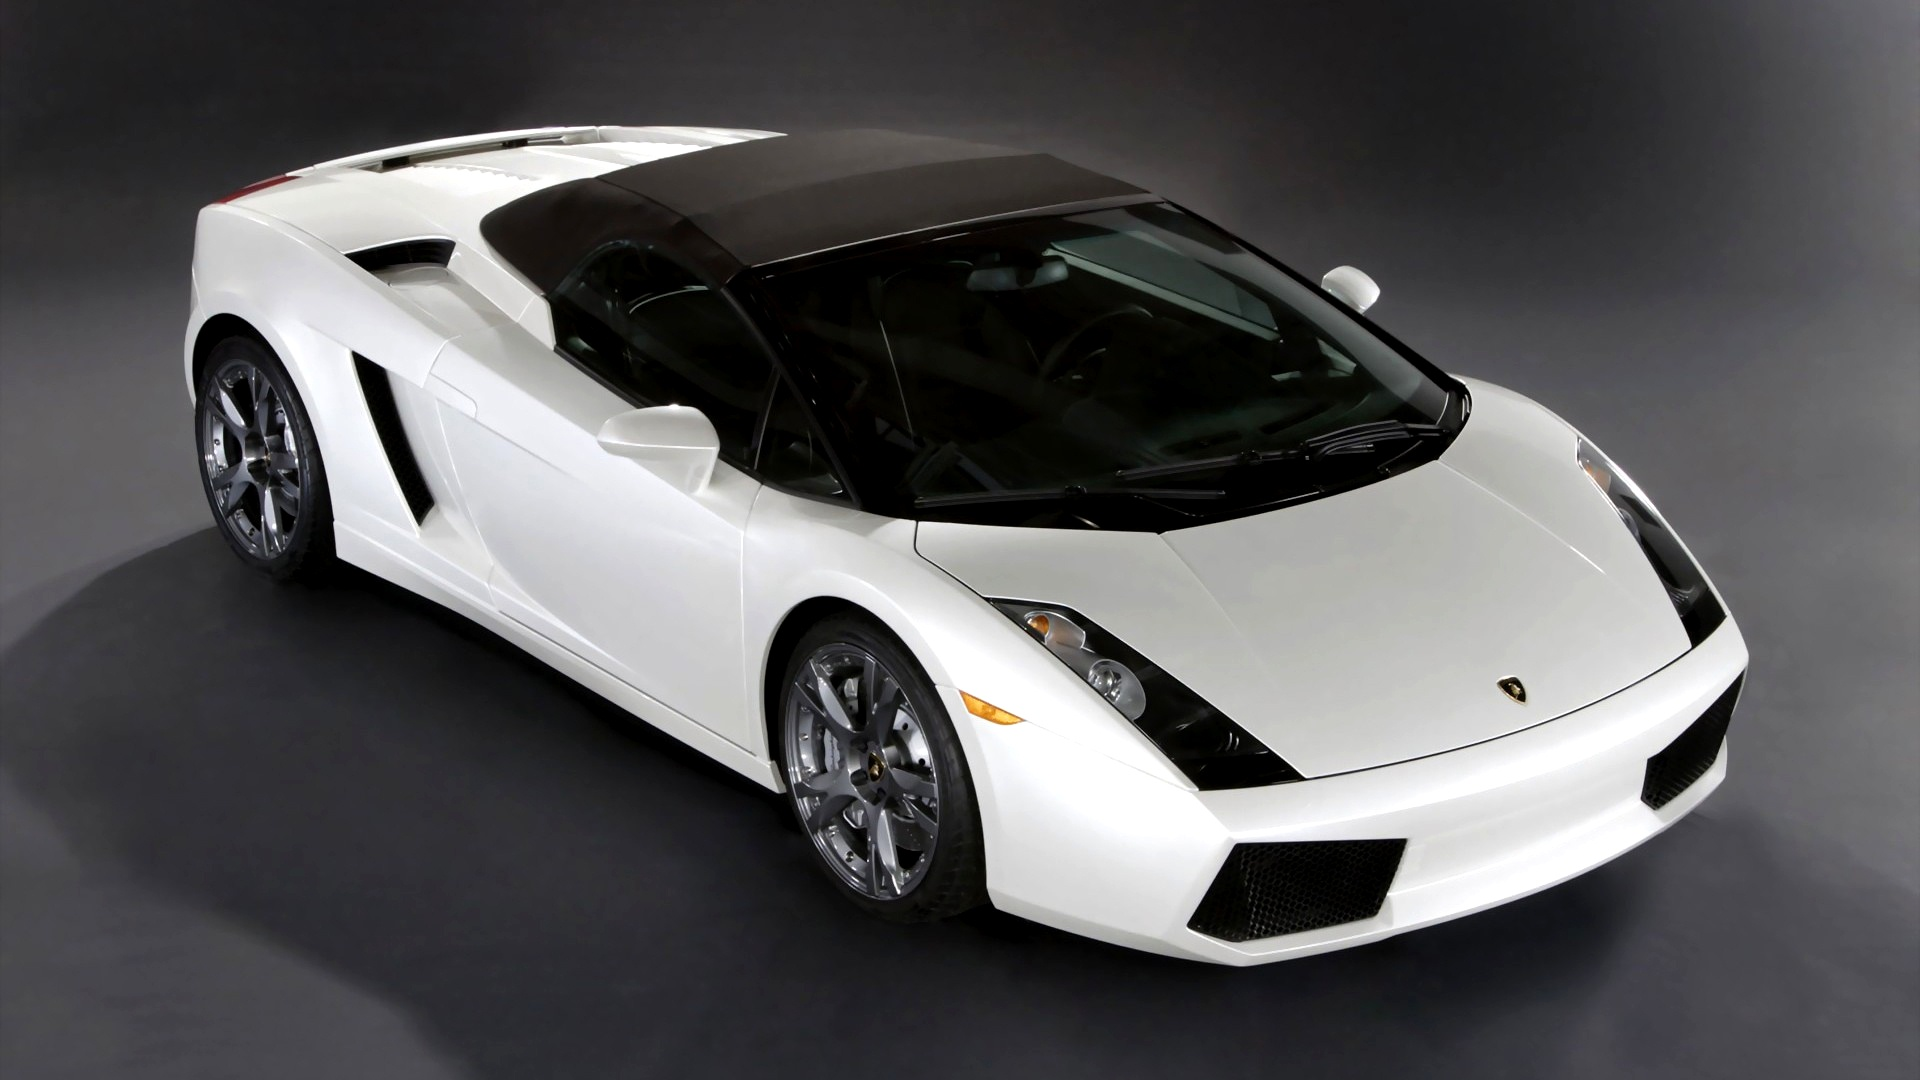 Lamborghini HD 1080p Wallpapers HD Wallpapers 1920x1080